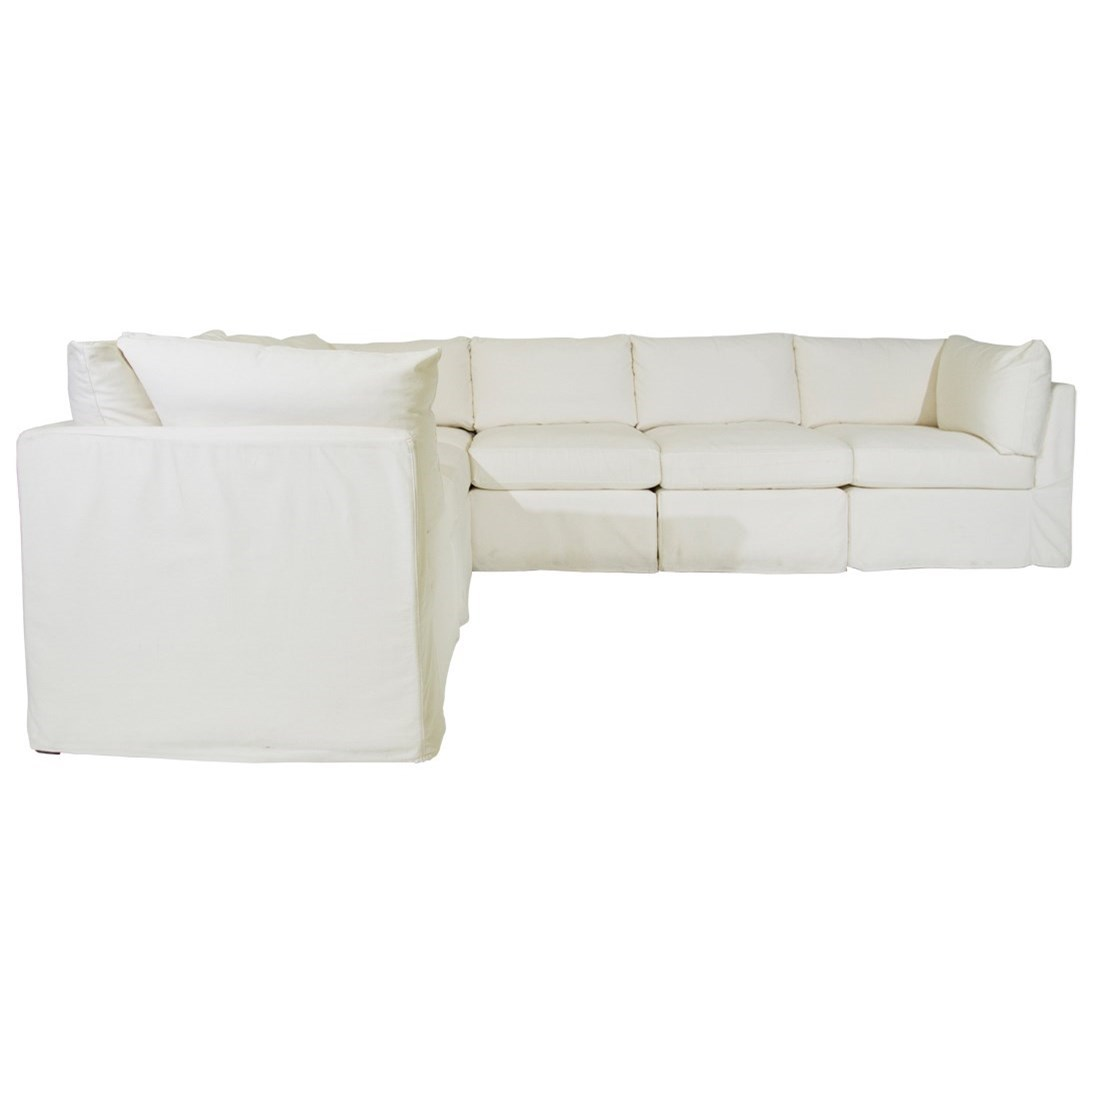 McCreary Modern 1058 Slipcover Sectional | C. S. Wo & Sons ...